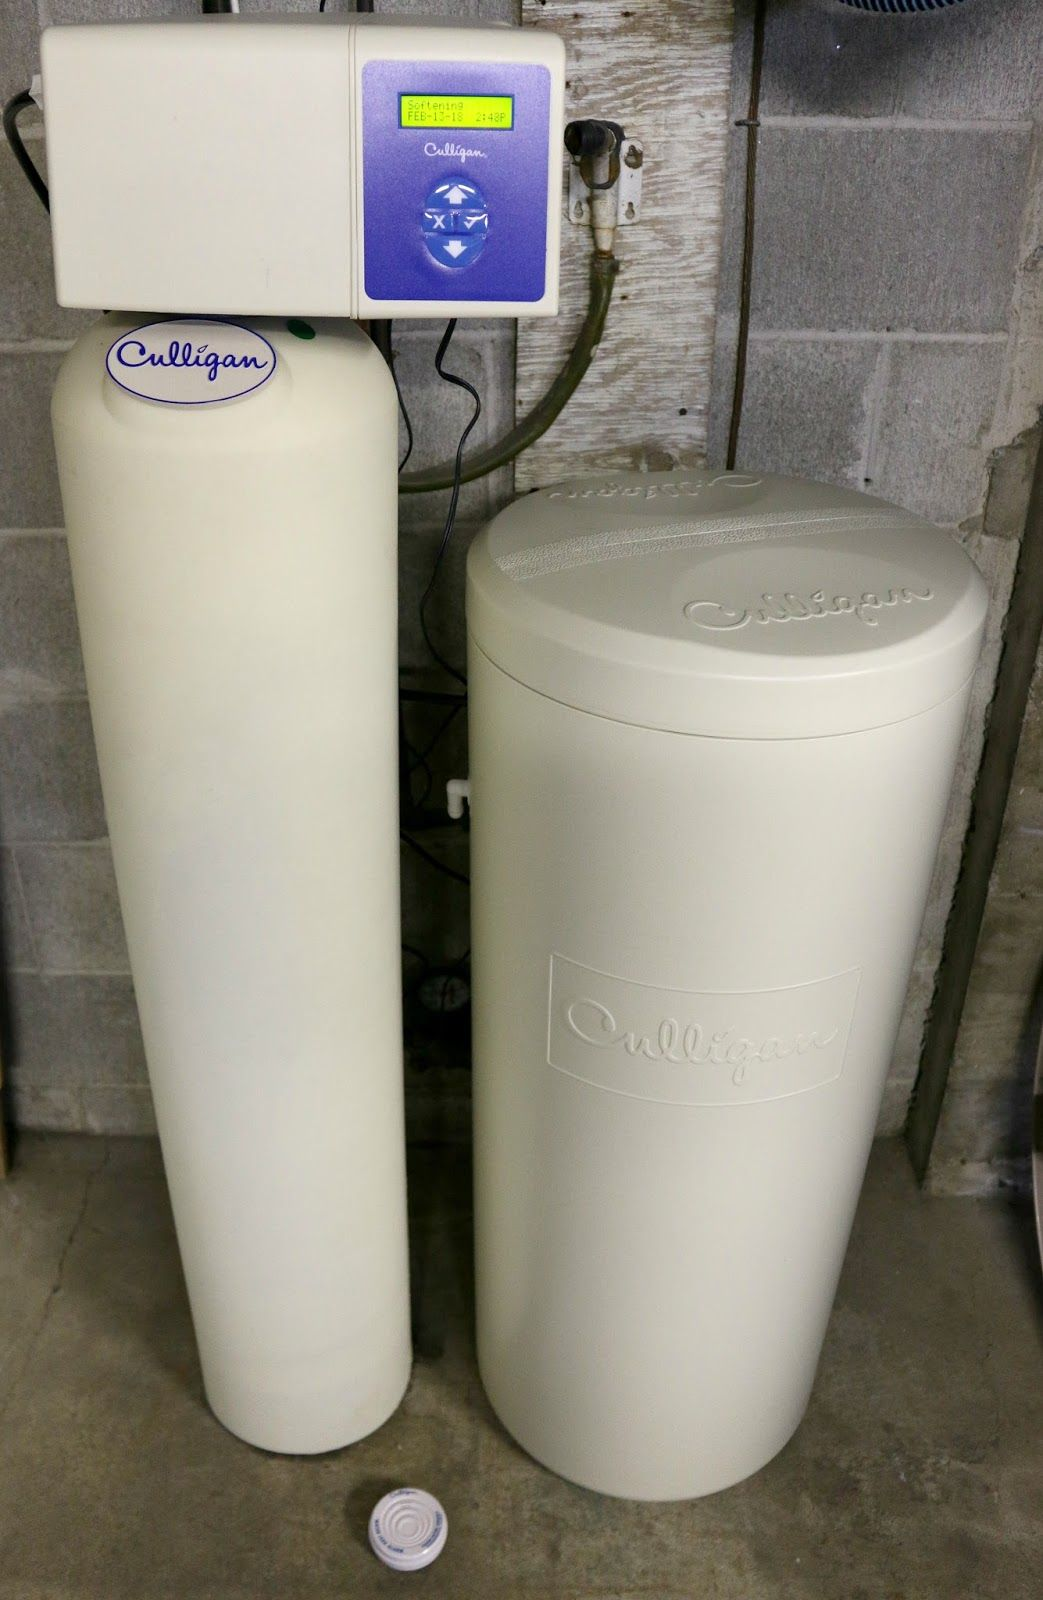 Water Softening And Filtering With Culligan Water Changes In My Beauty Routine Water Softener My Beauty Routine Smoother Skin